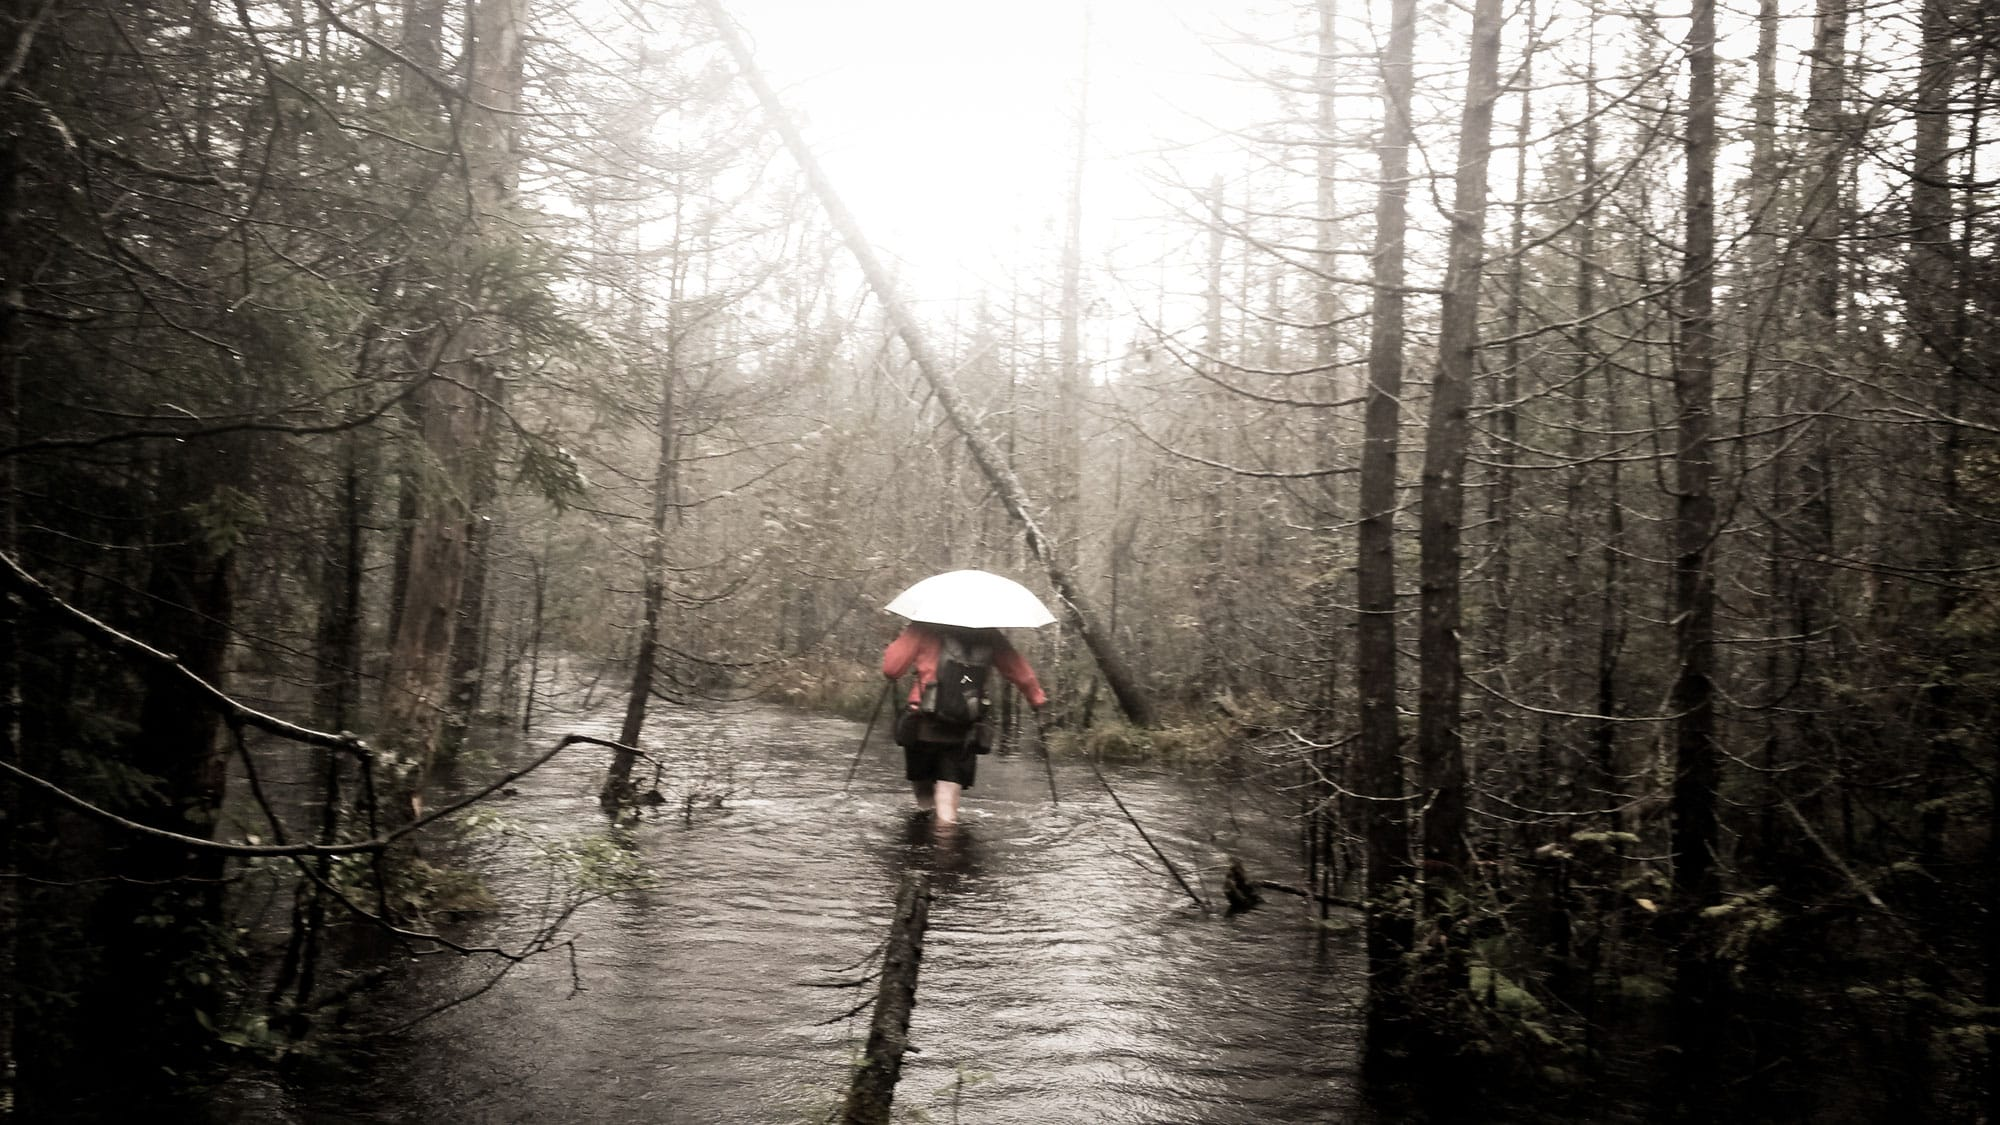 Dampish conditions in New York's Adirondack Mountains | October, 2015